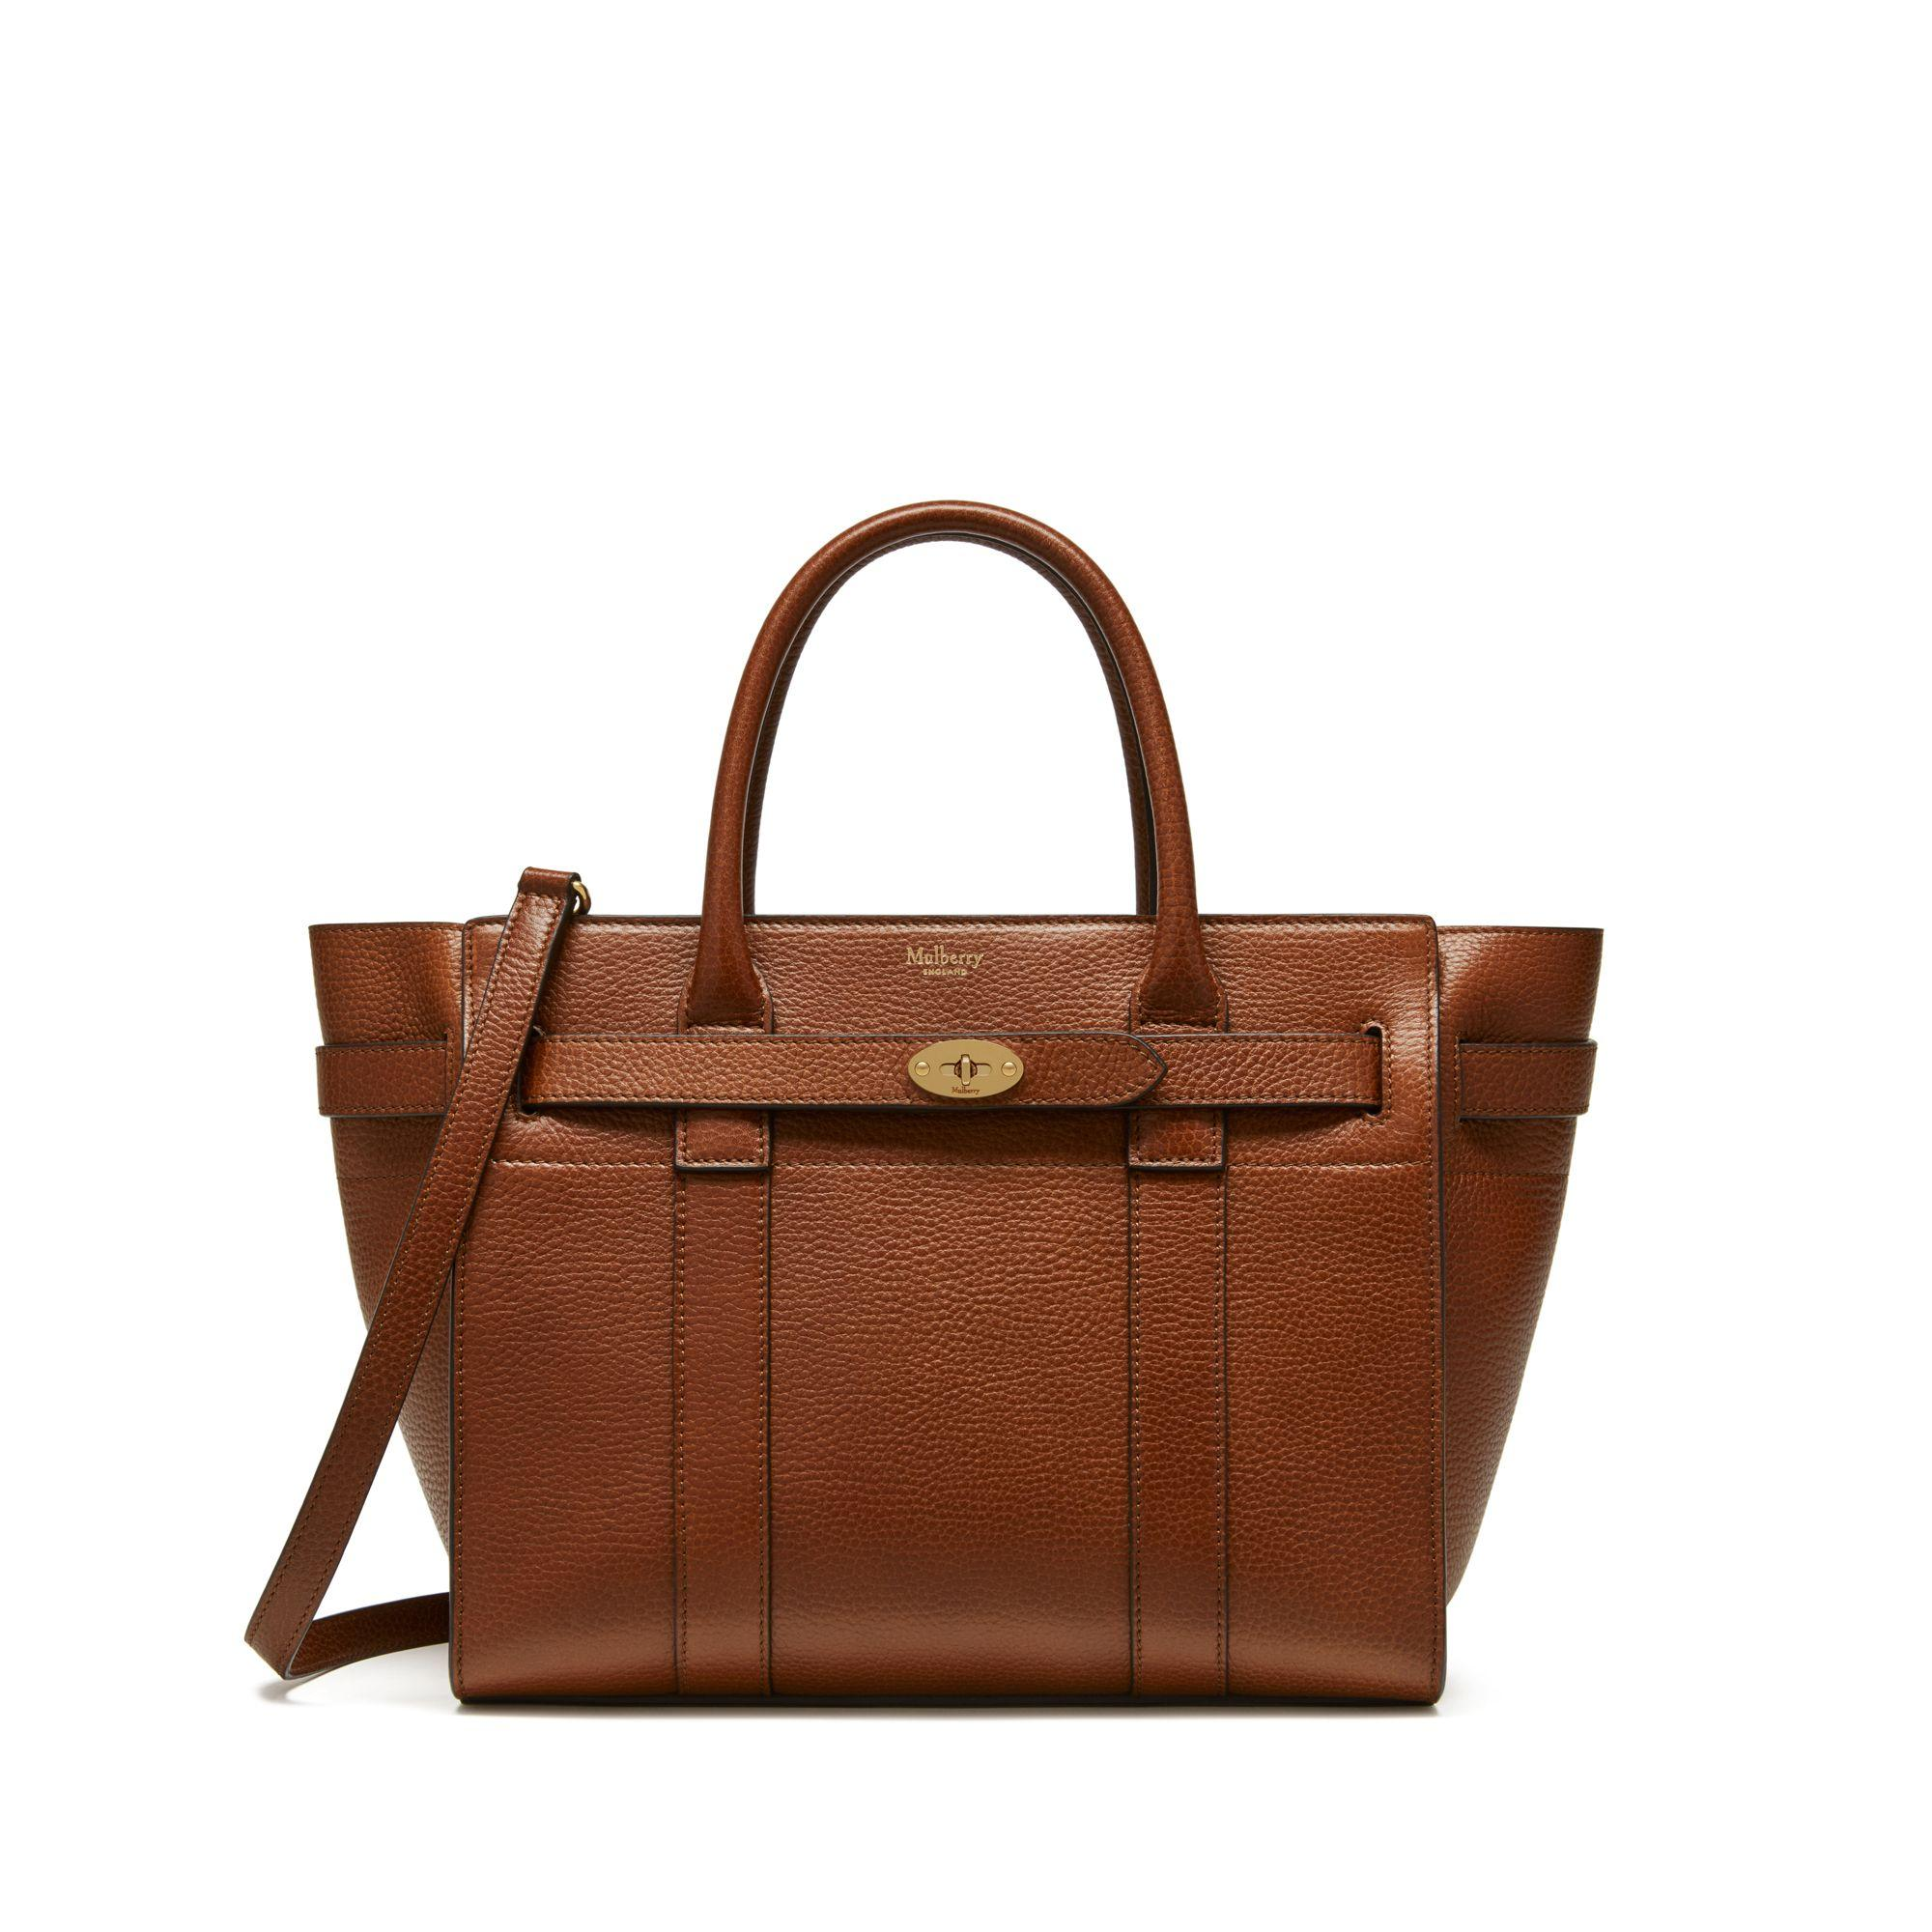 Lyst - Mulberry Small Zipped Bayswater In Oak Natural Grain Leather ... 722d82a94151b